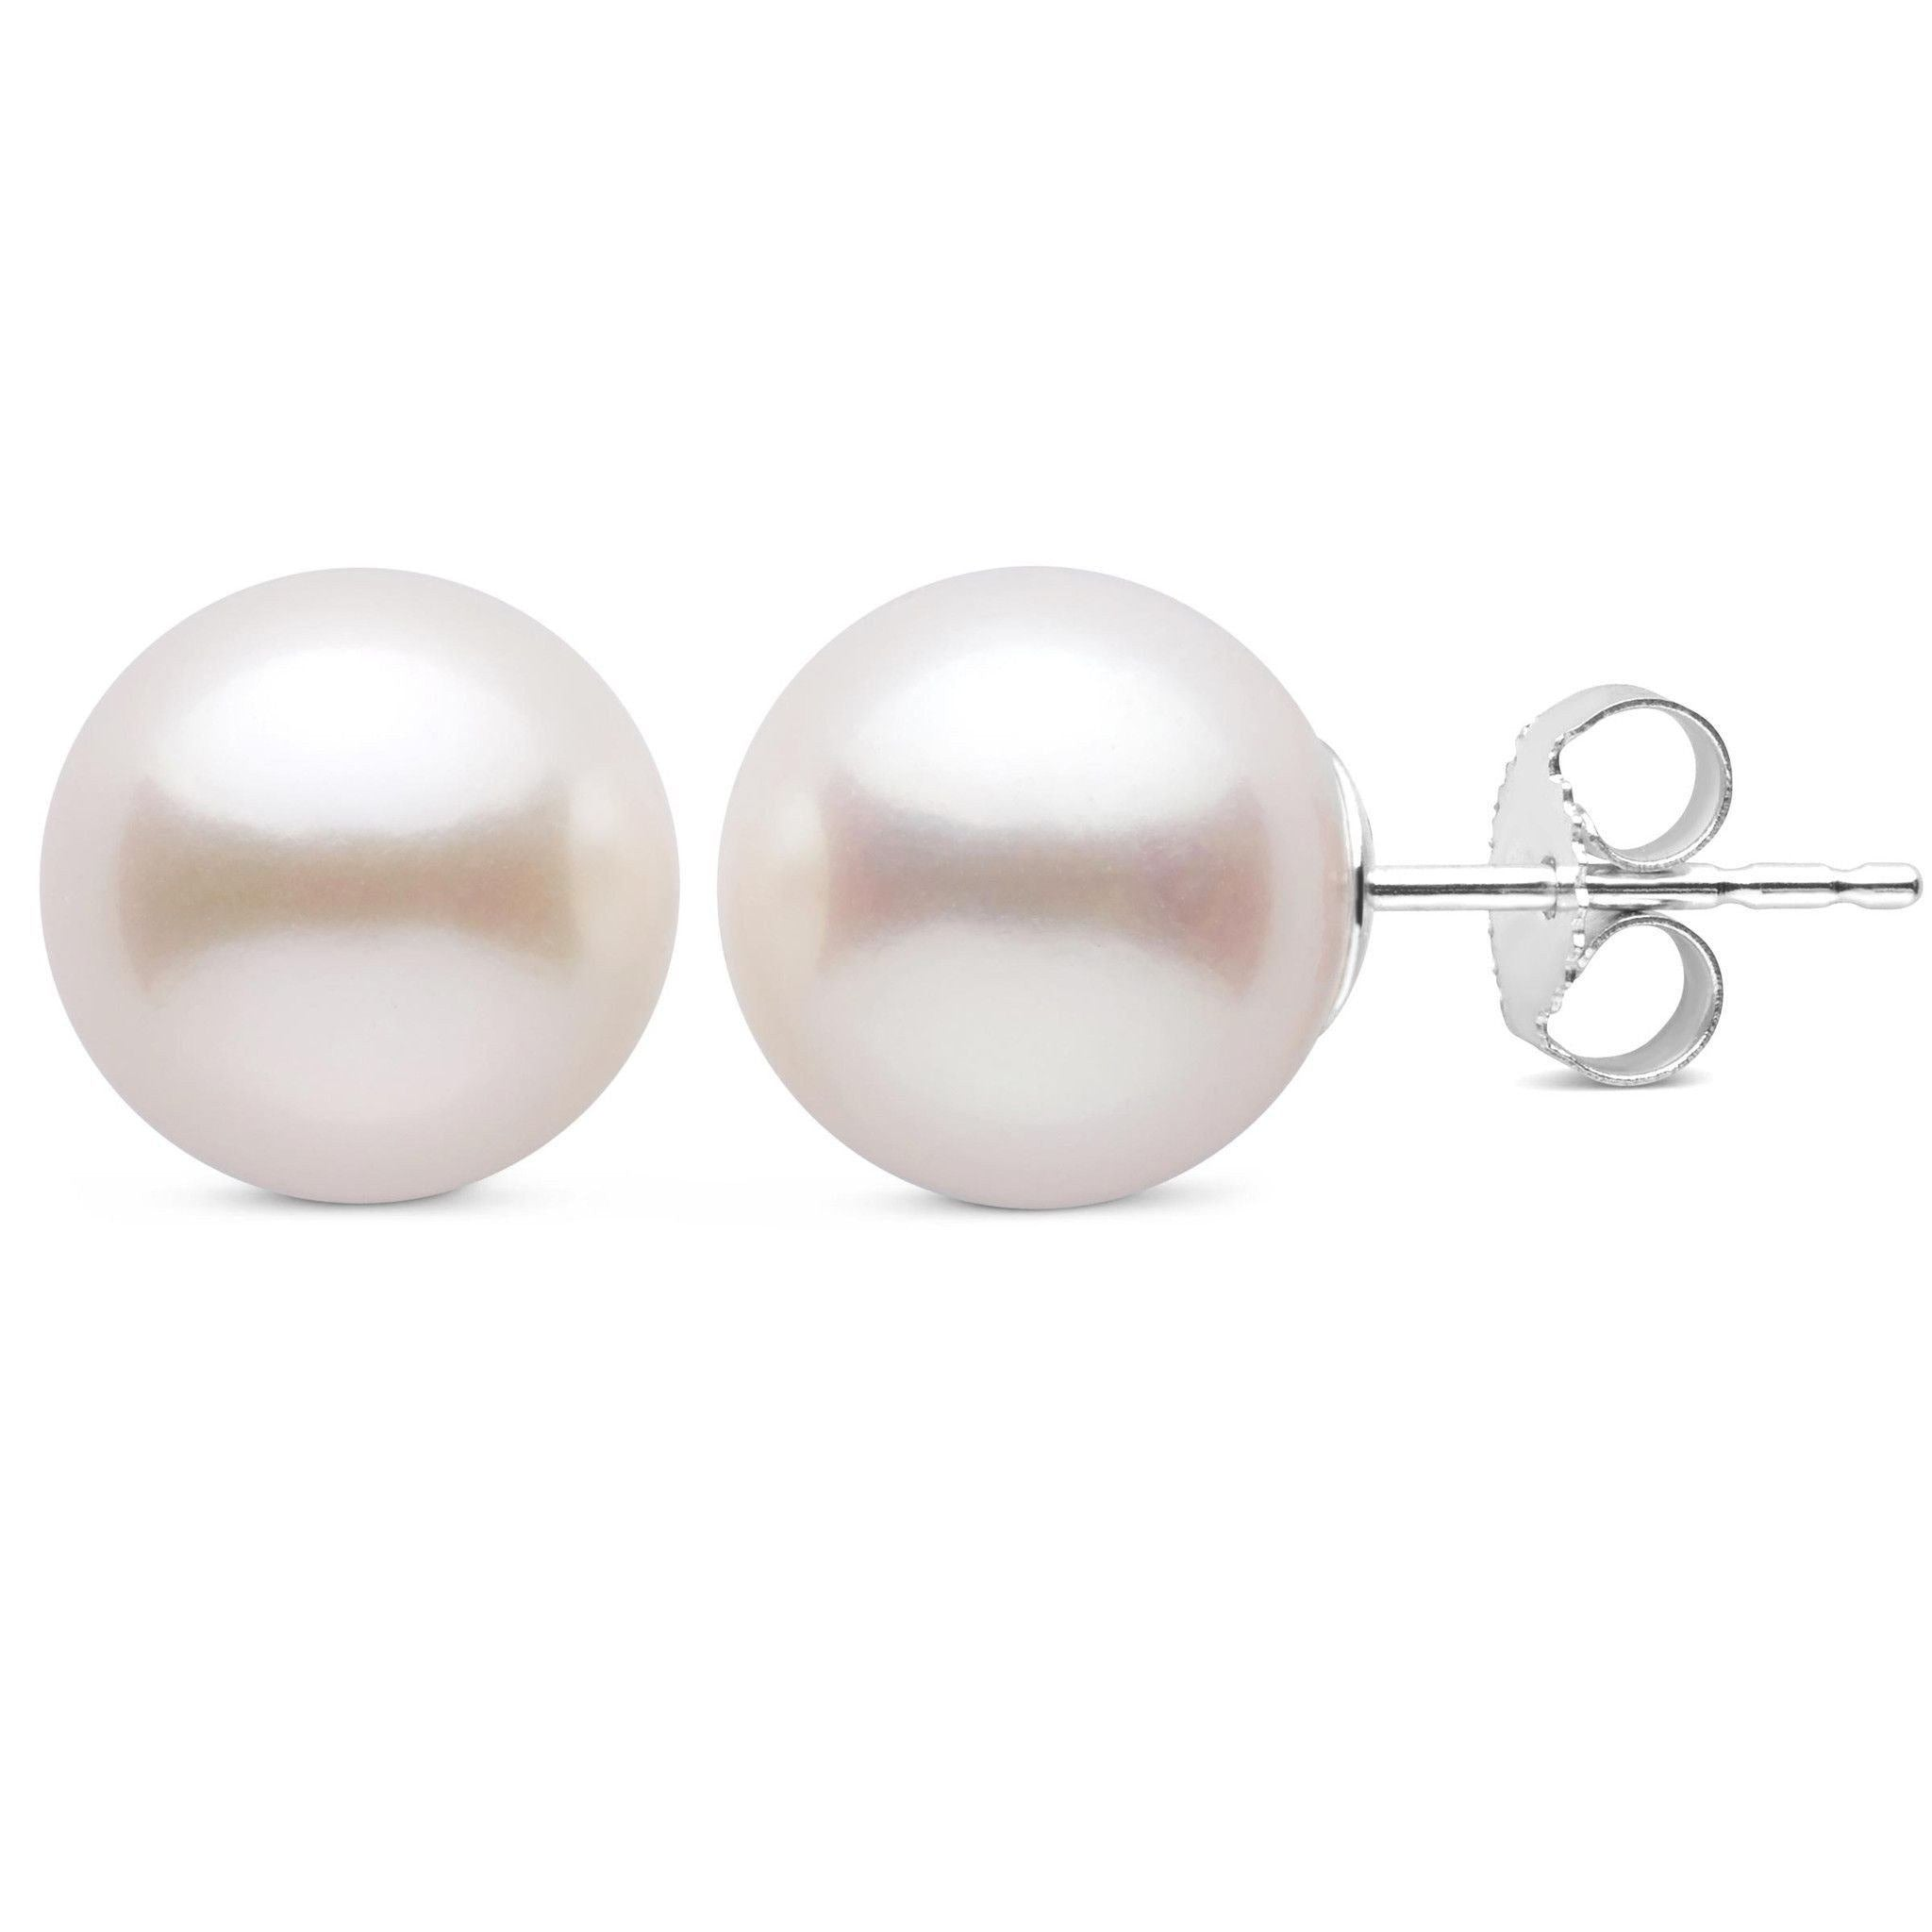 Assorted Pearl Earrings